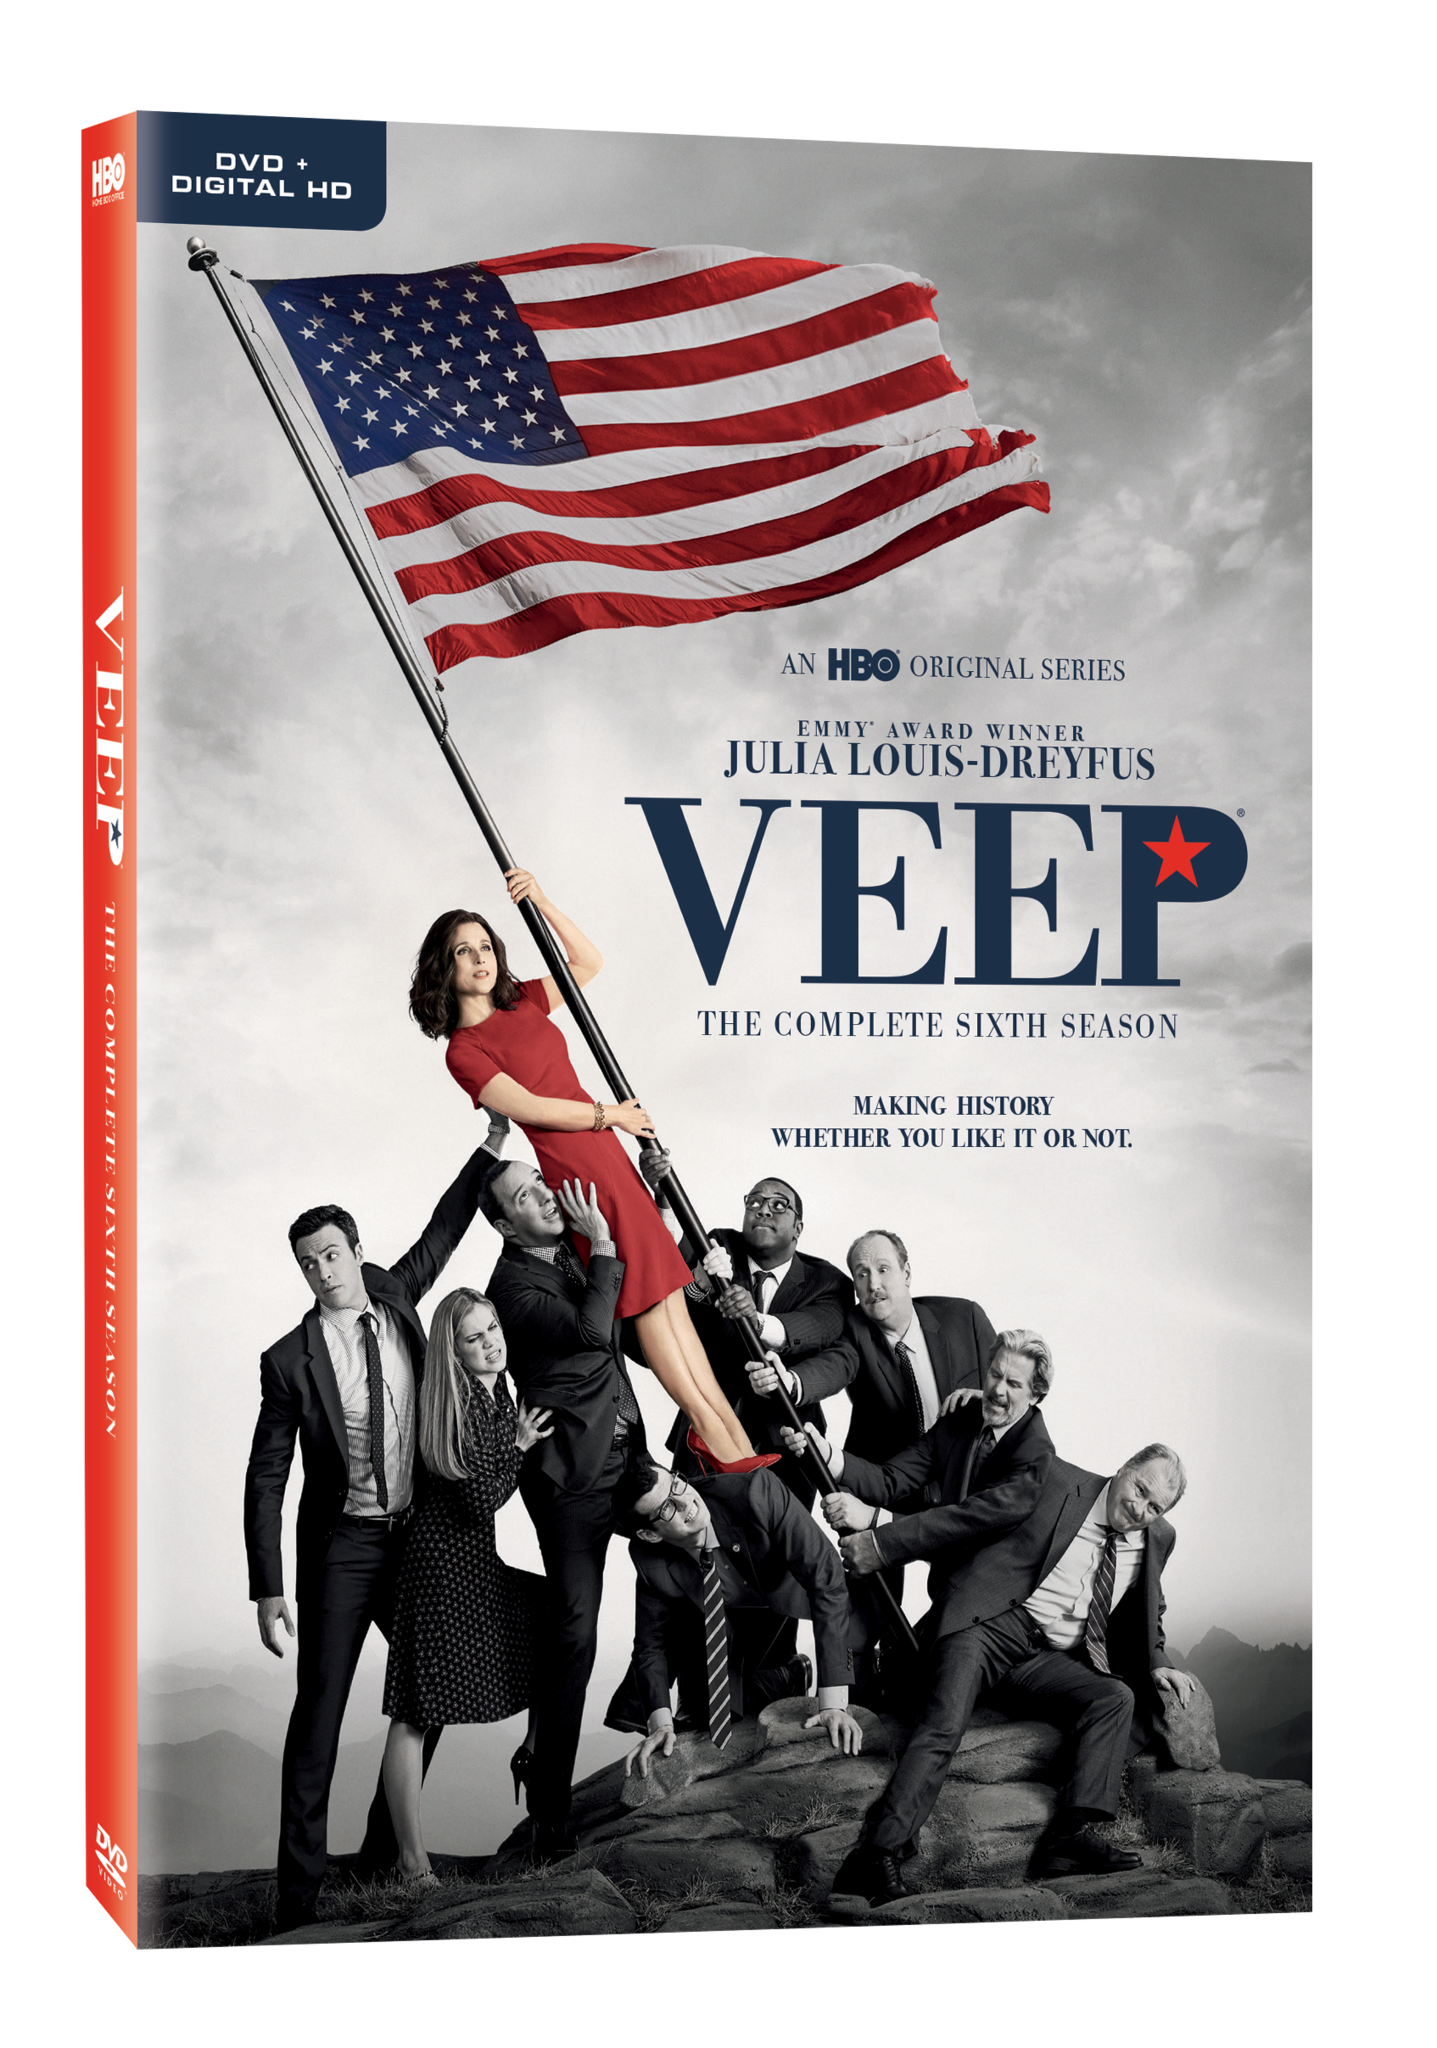 Veep clip hbo. The complete sixth season